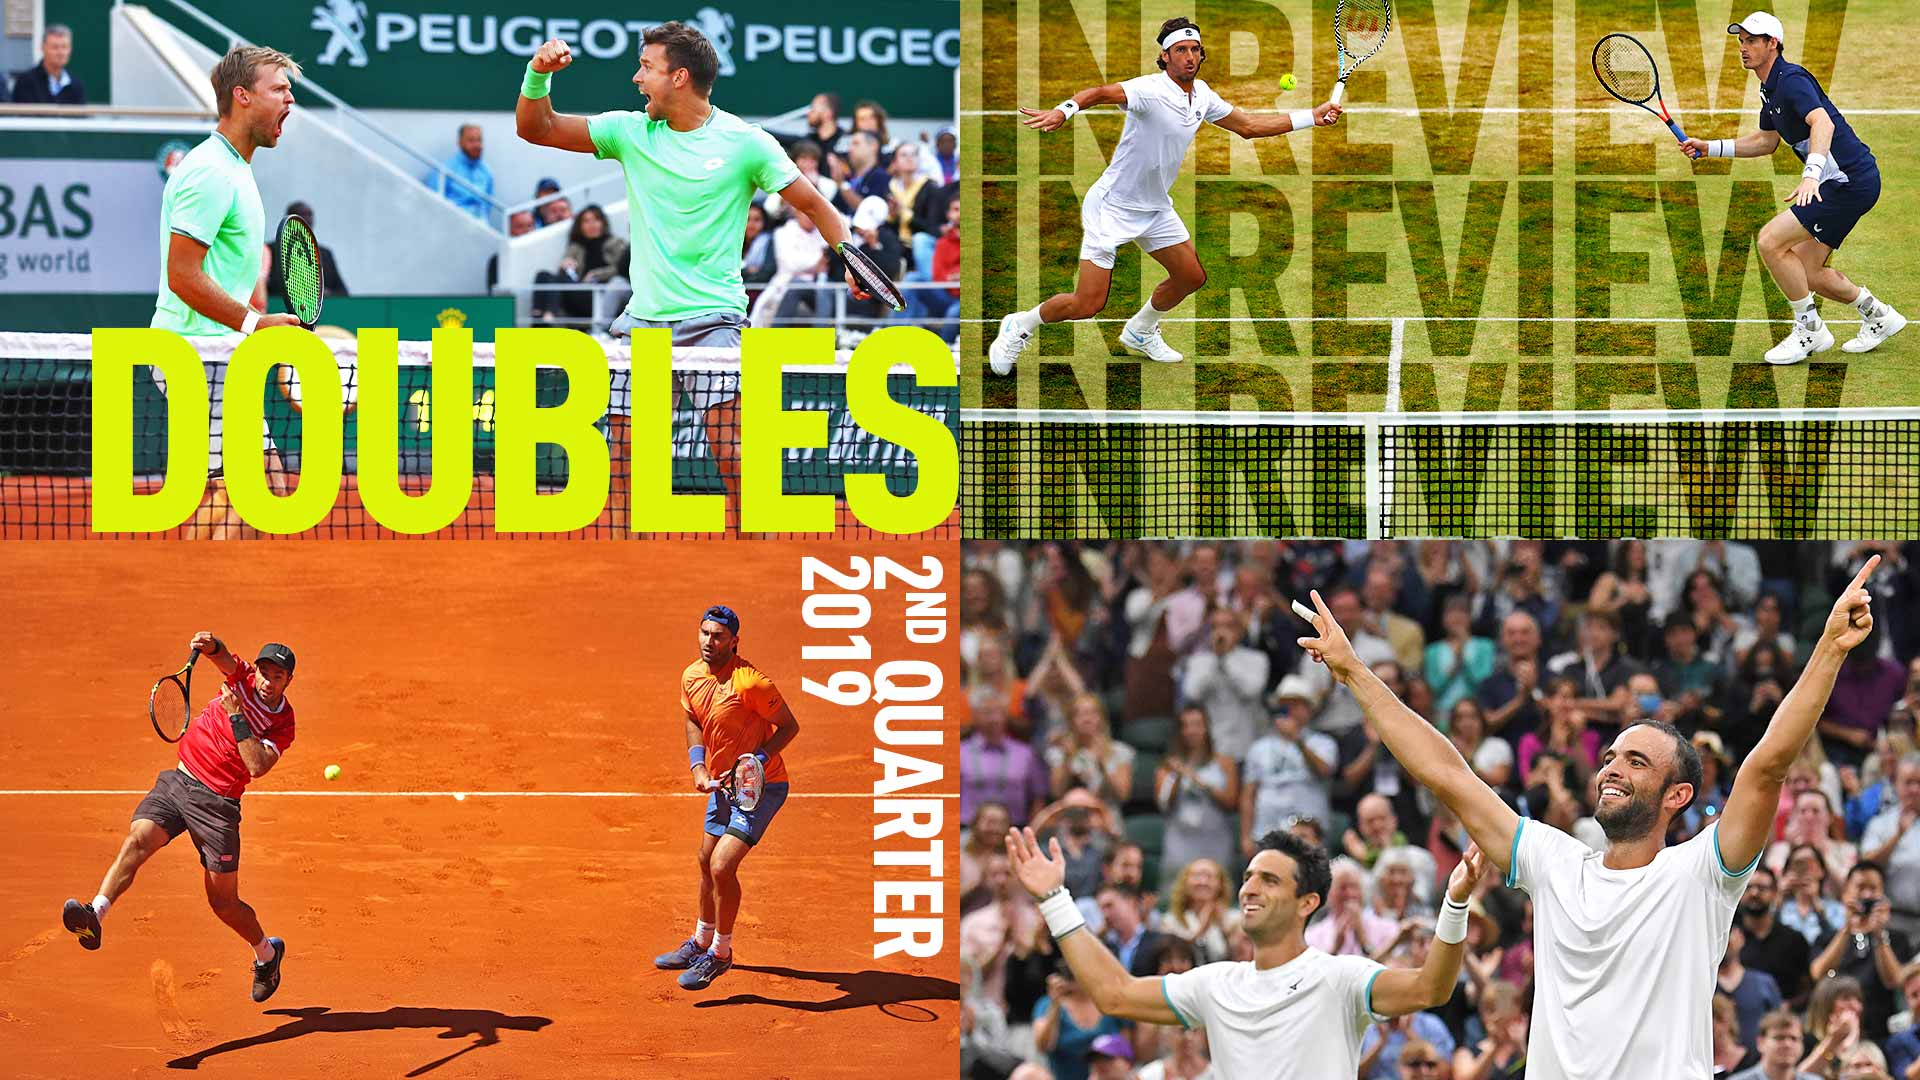 Second quarter doubles review 2019